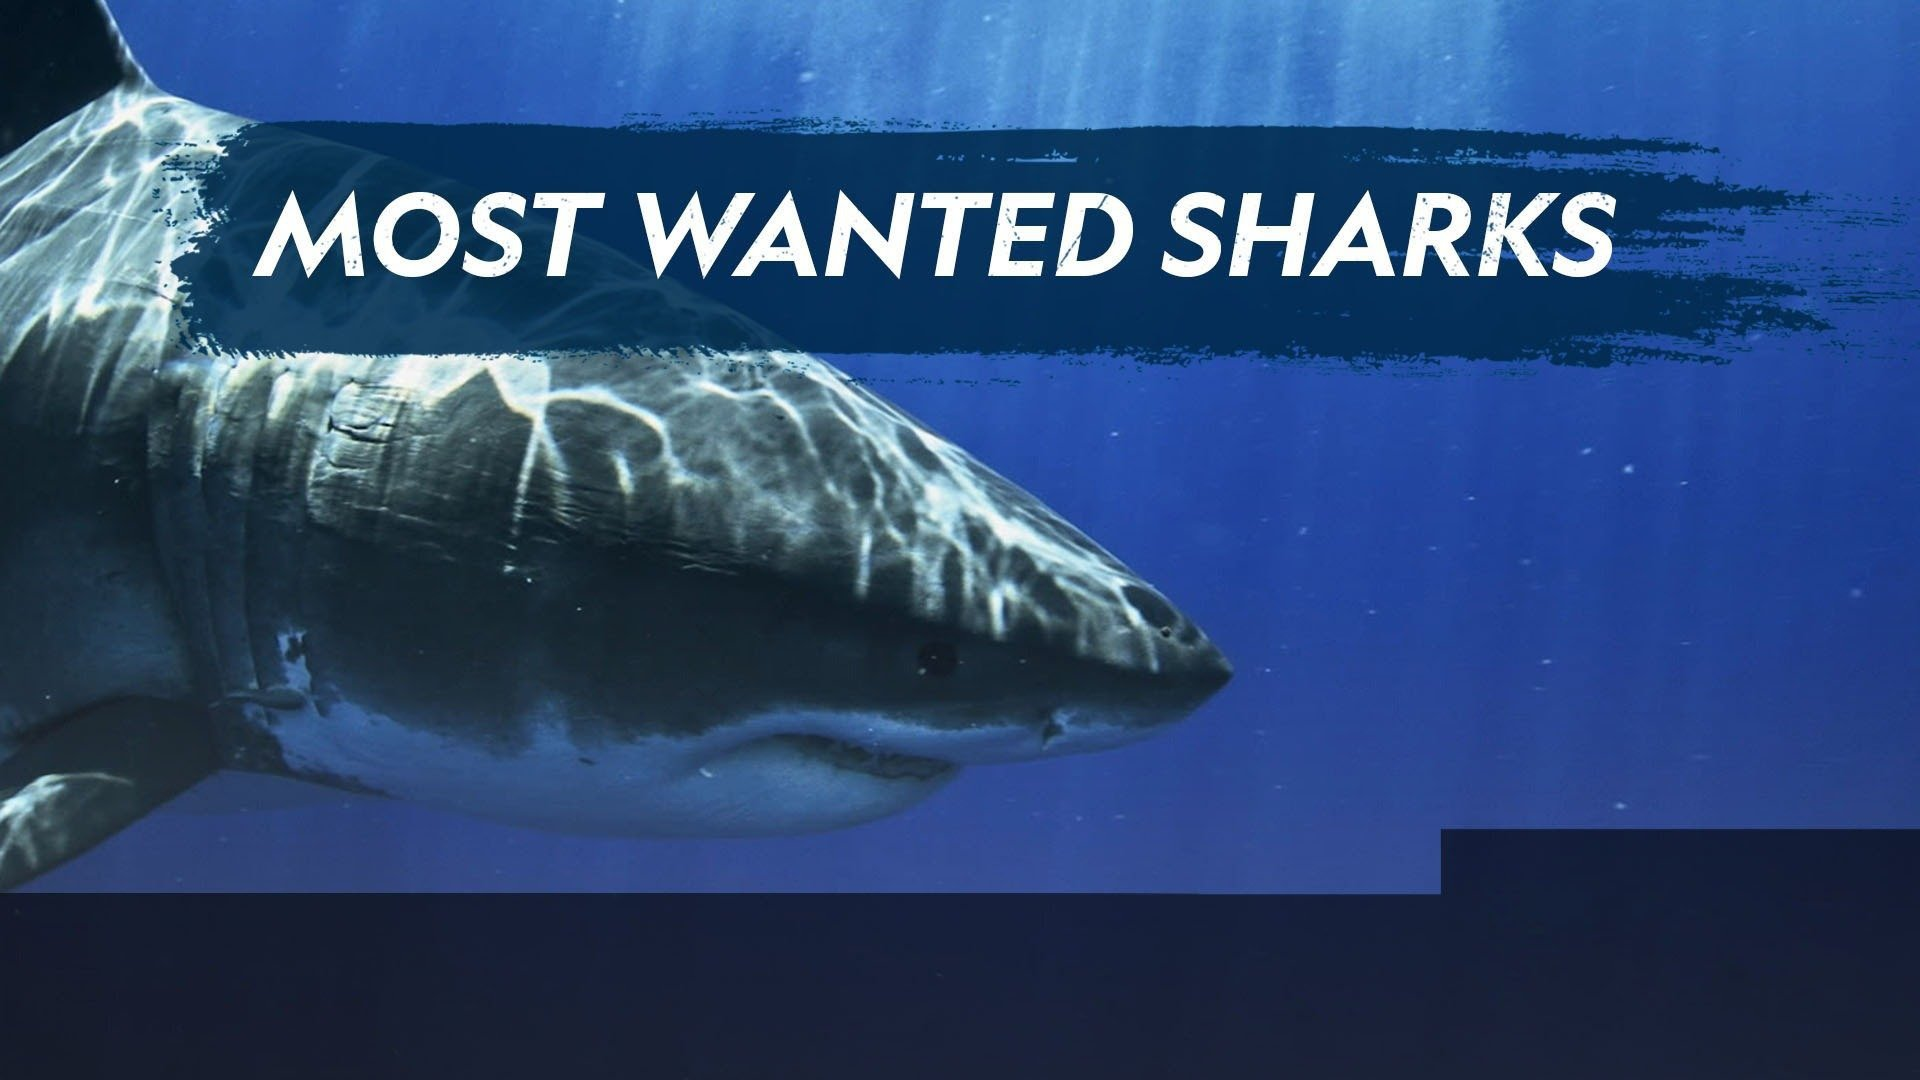 Most Wanted Sharks